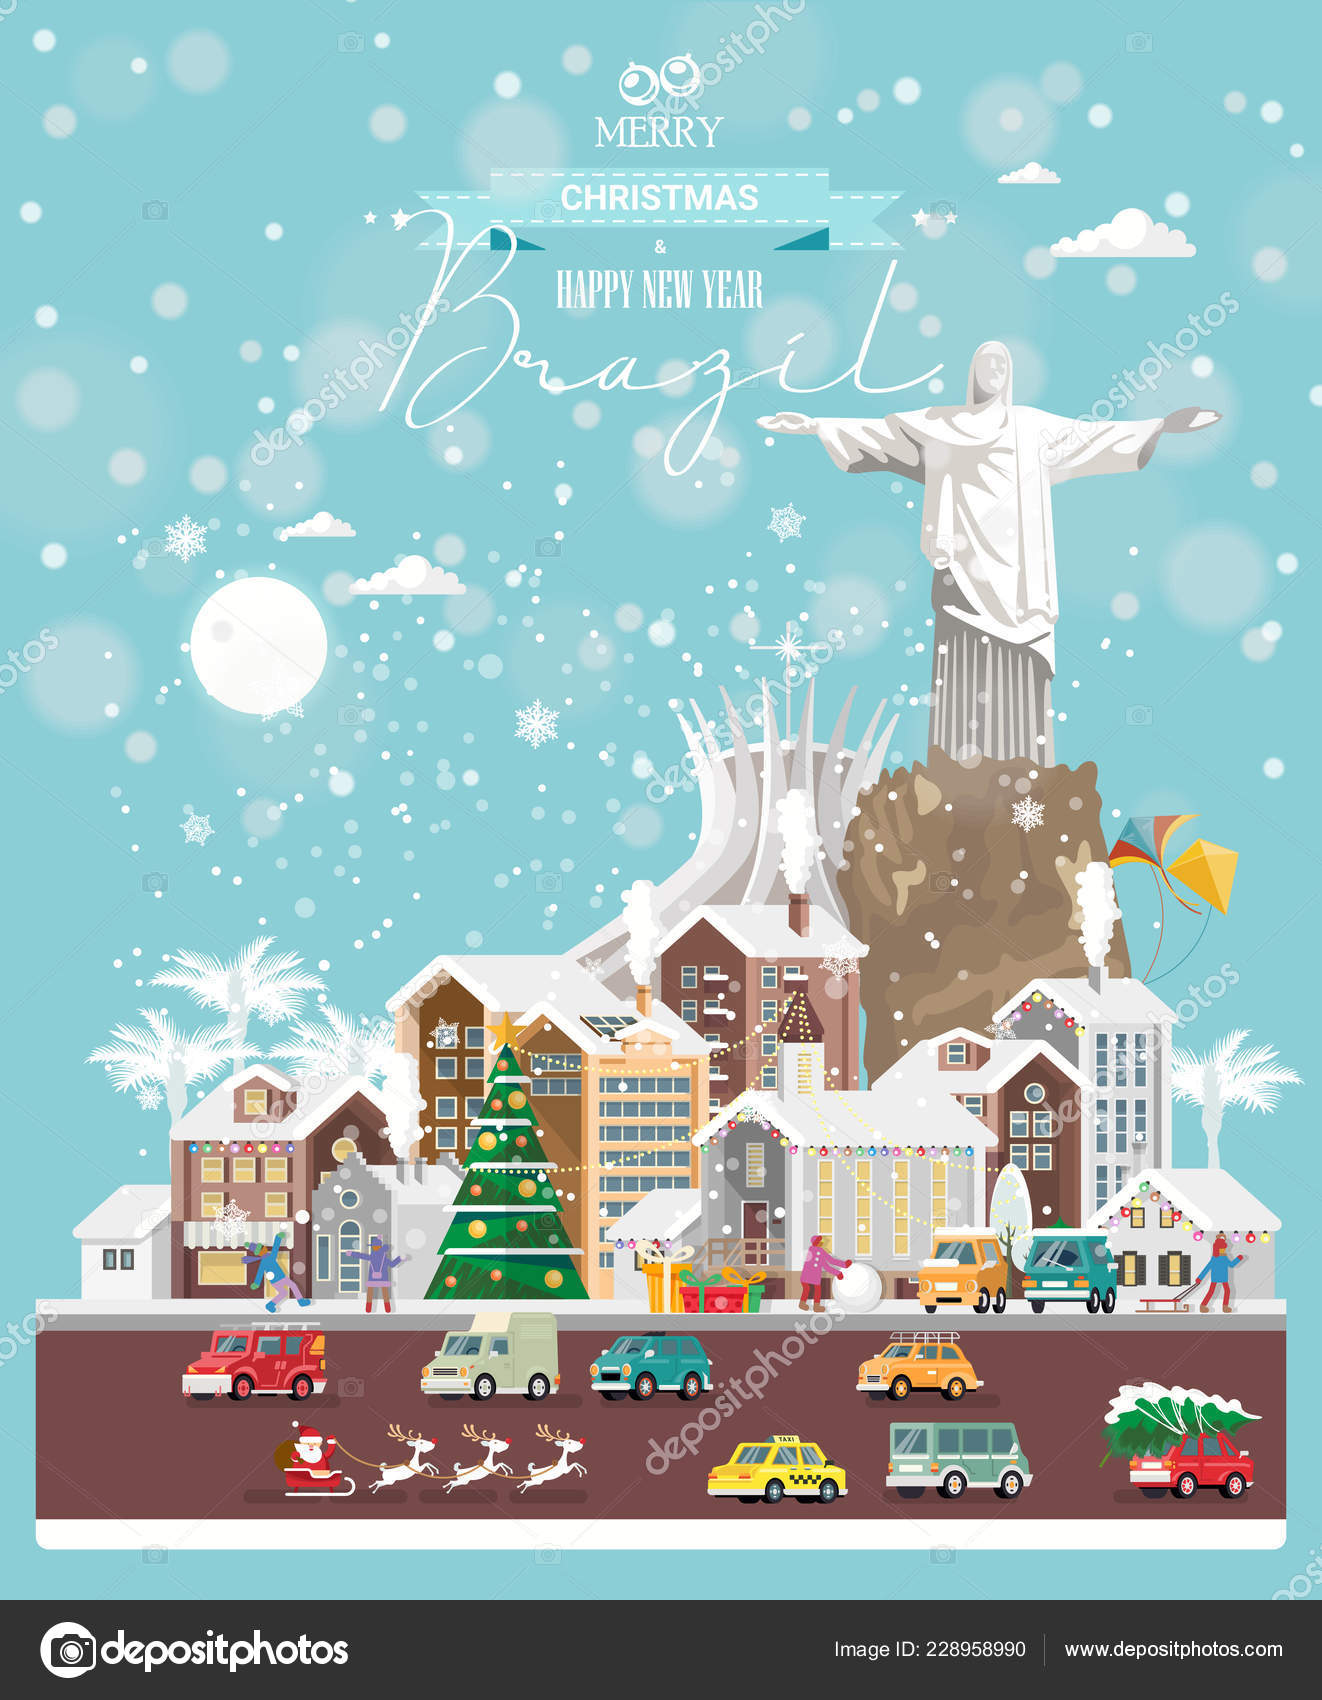 Christmas wishes from Brazil. Modern vector greeting card in flat style with snowflakes, winter city, decorations, cars and happy people.